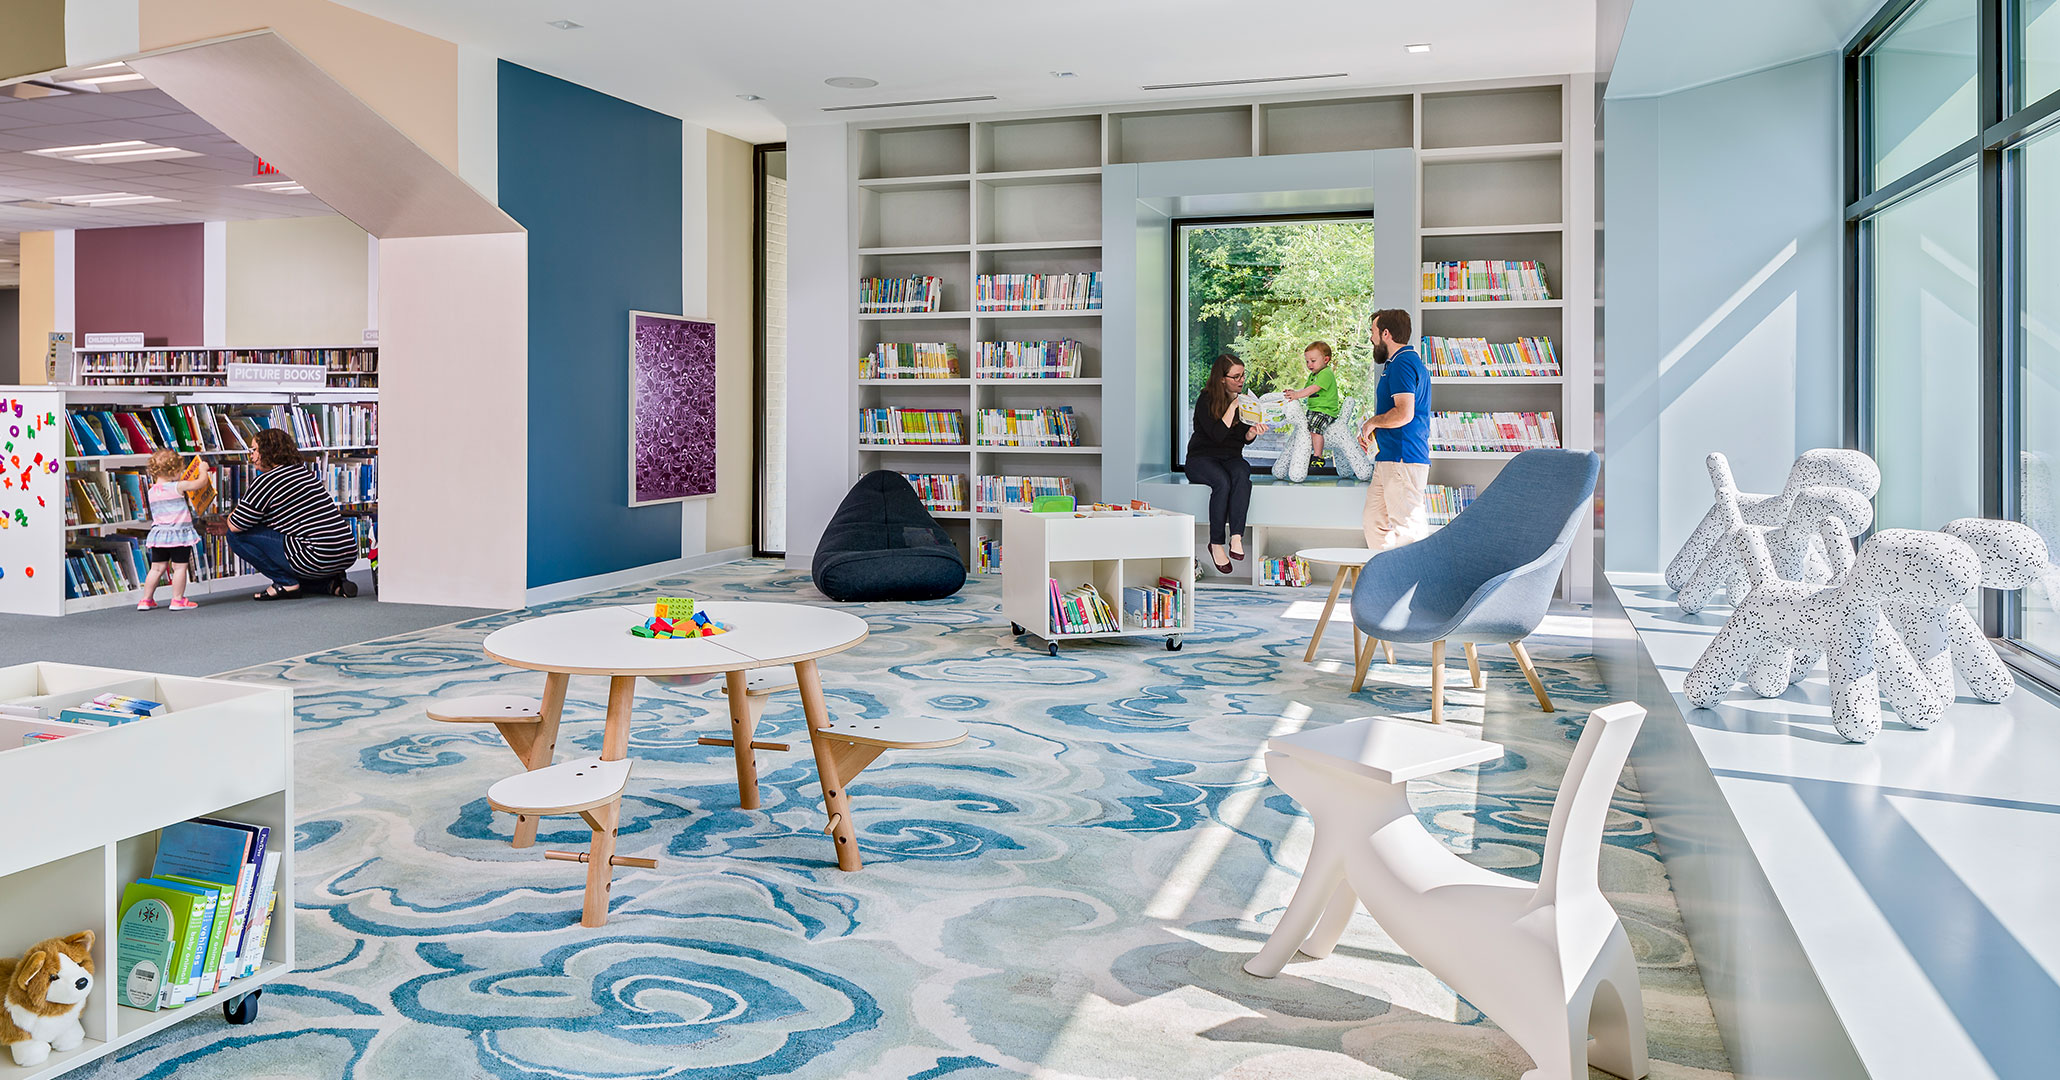 Boudreaux architects out of Columbia, SC designed colorful spaces for the Cooper library.